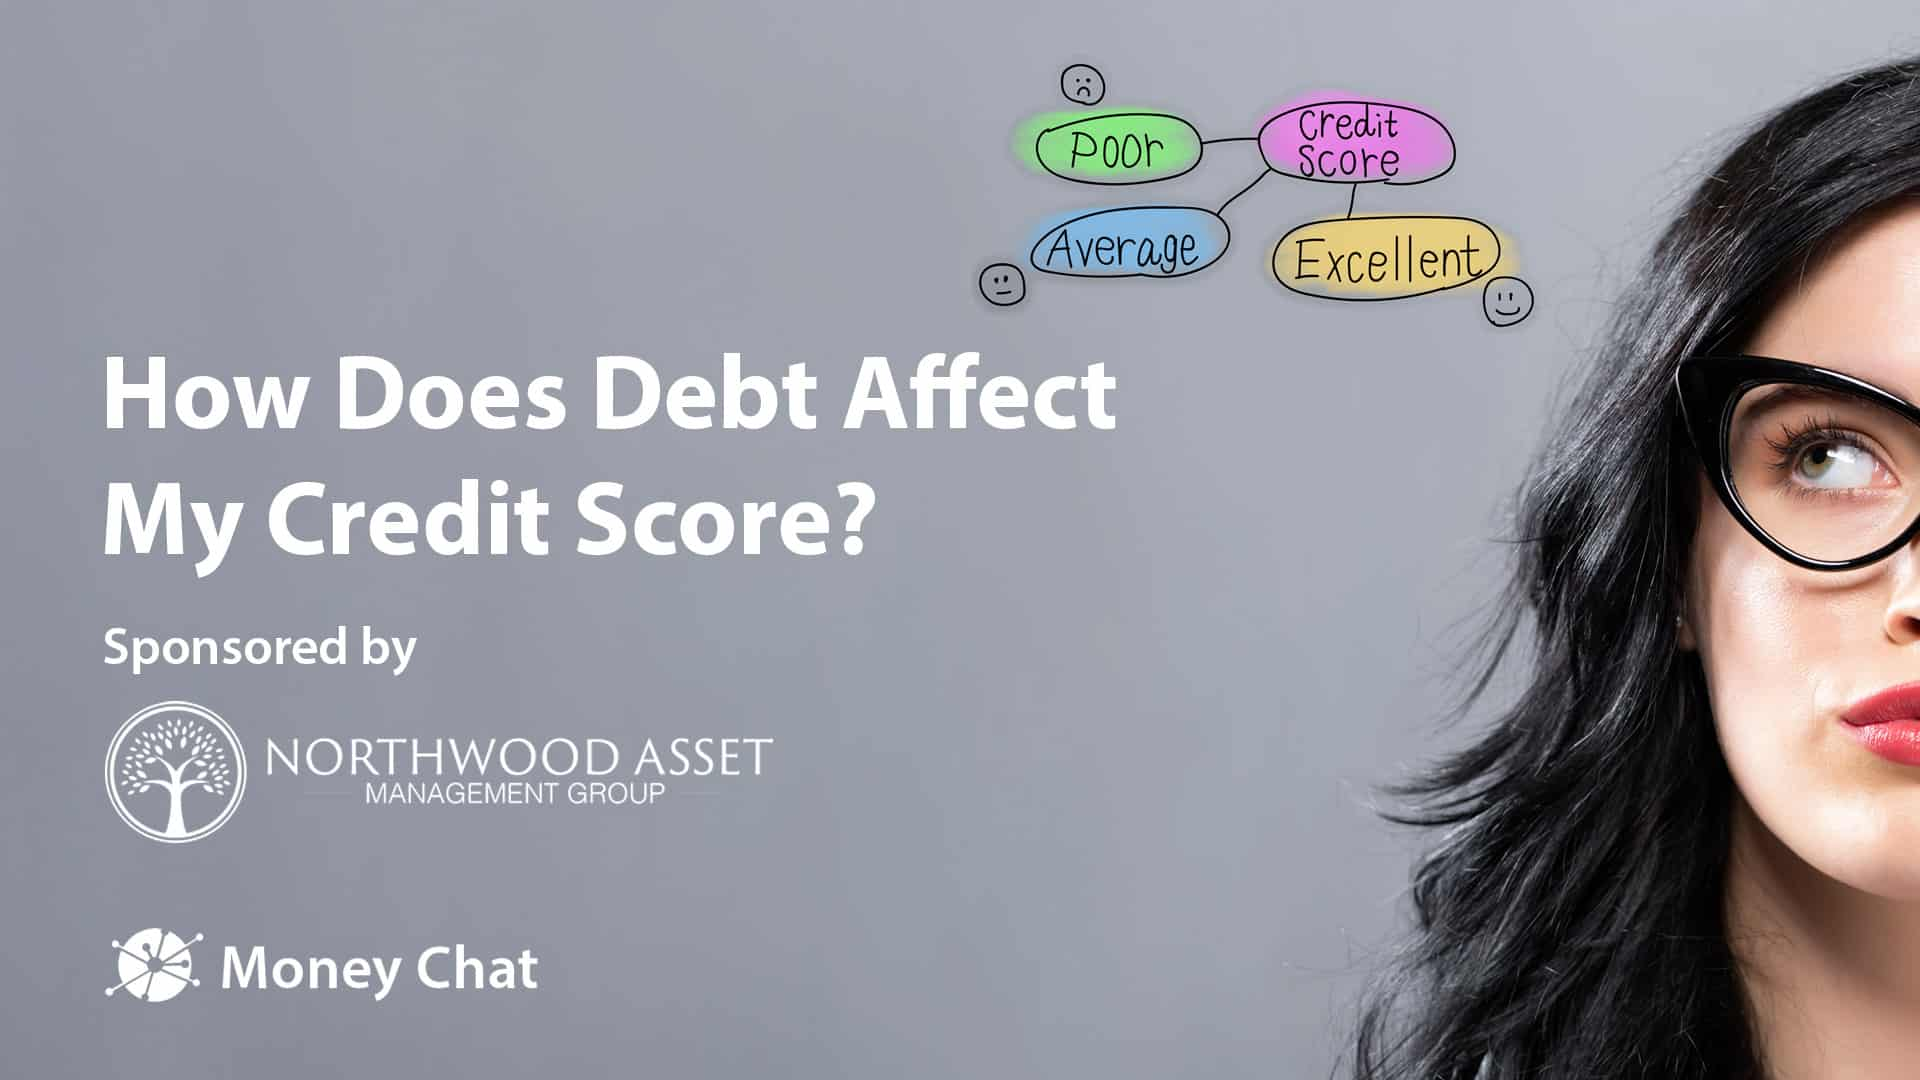 Credit score theme with young businesswoman in a thoughtful face